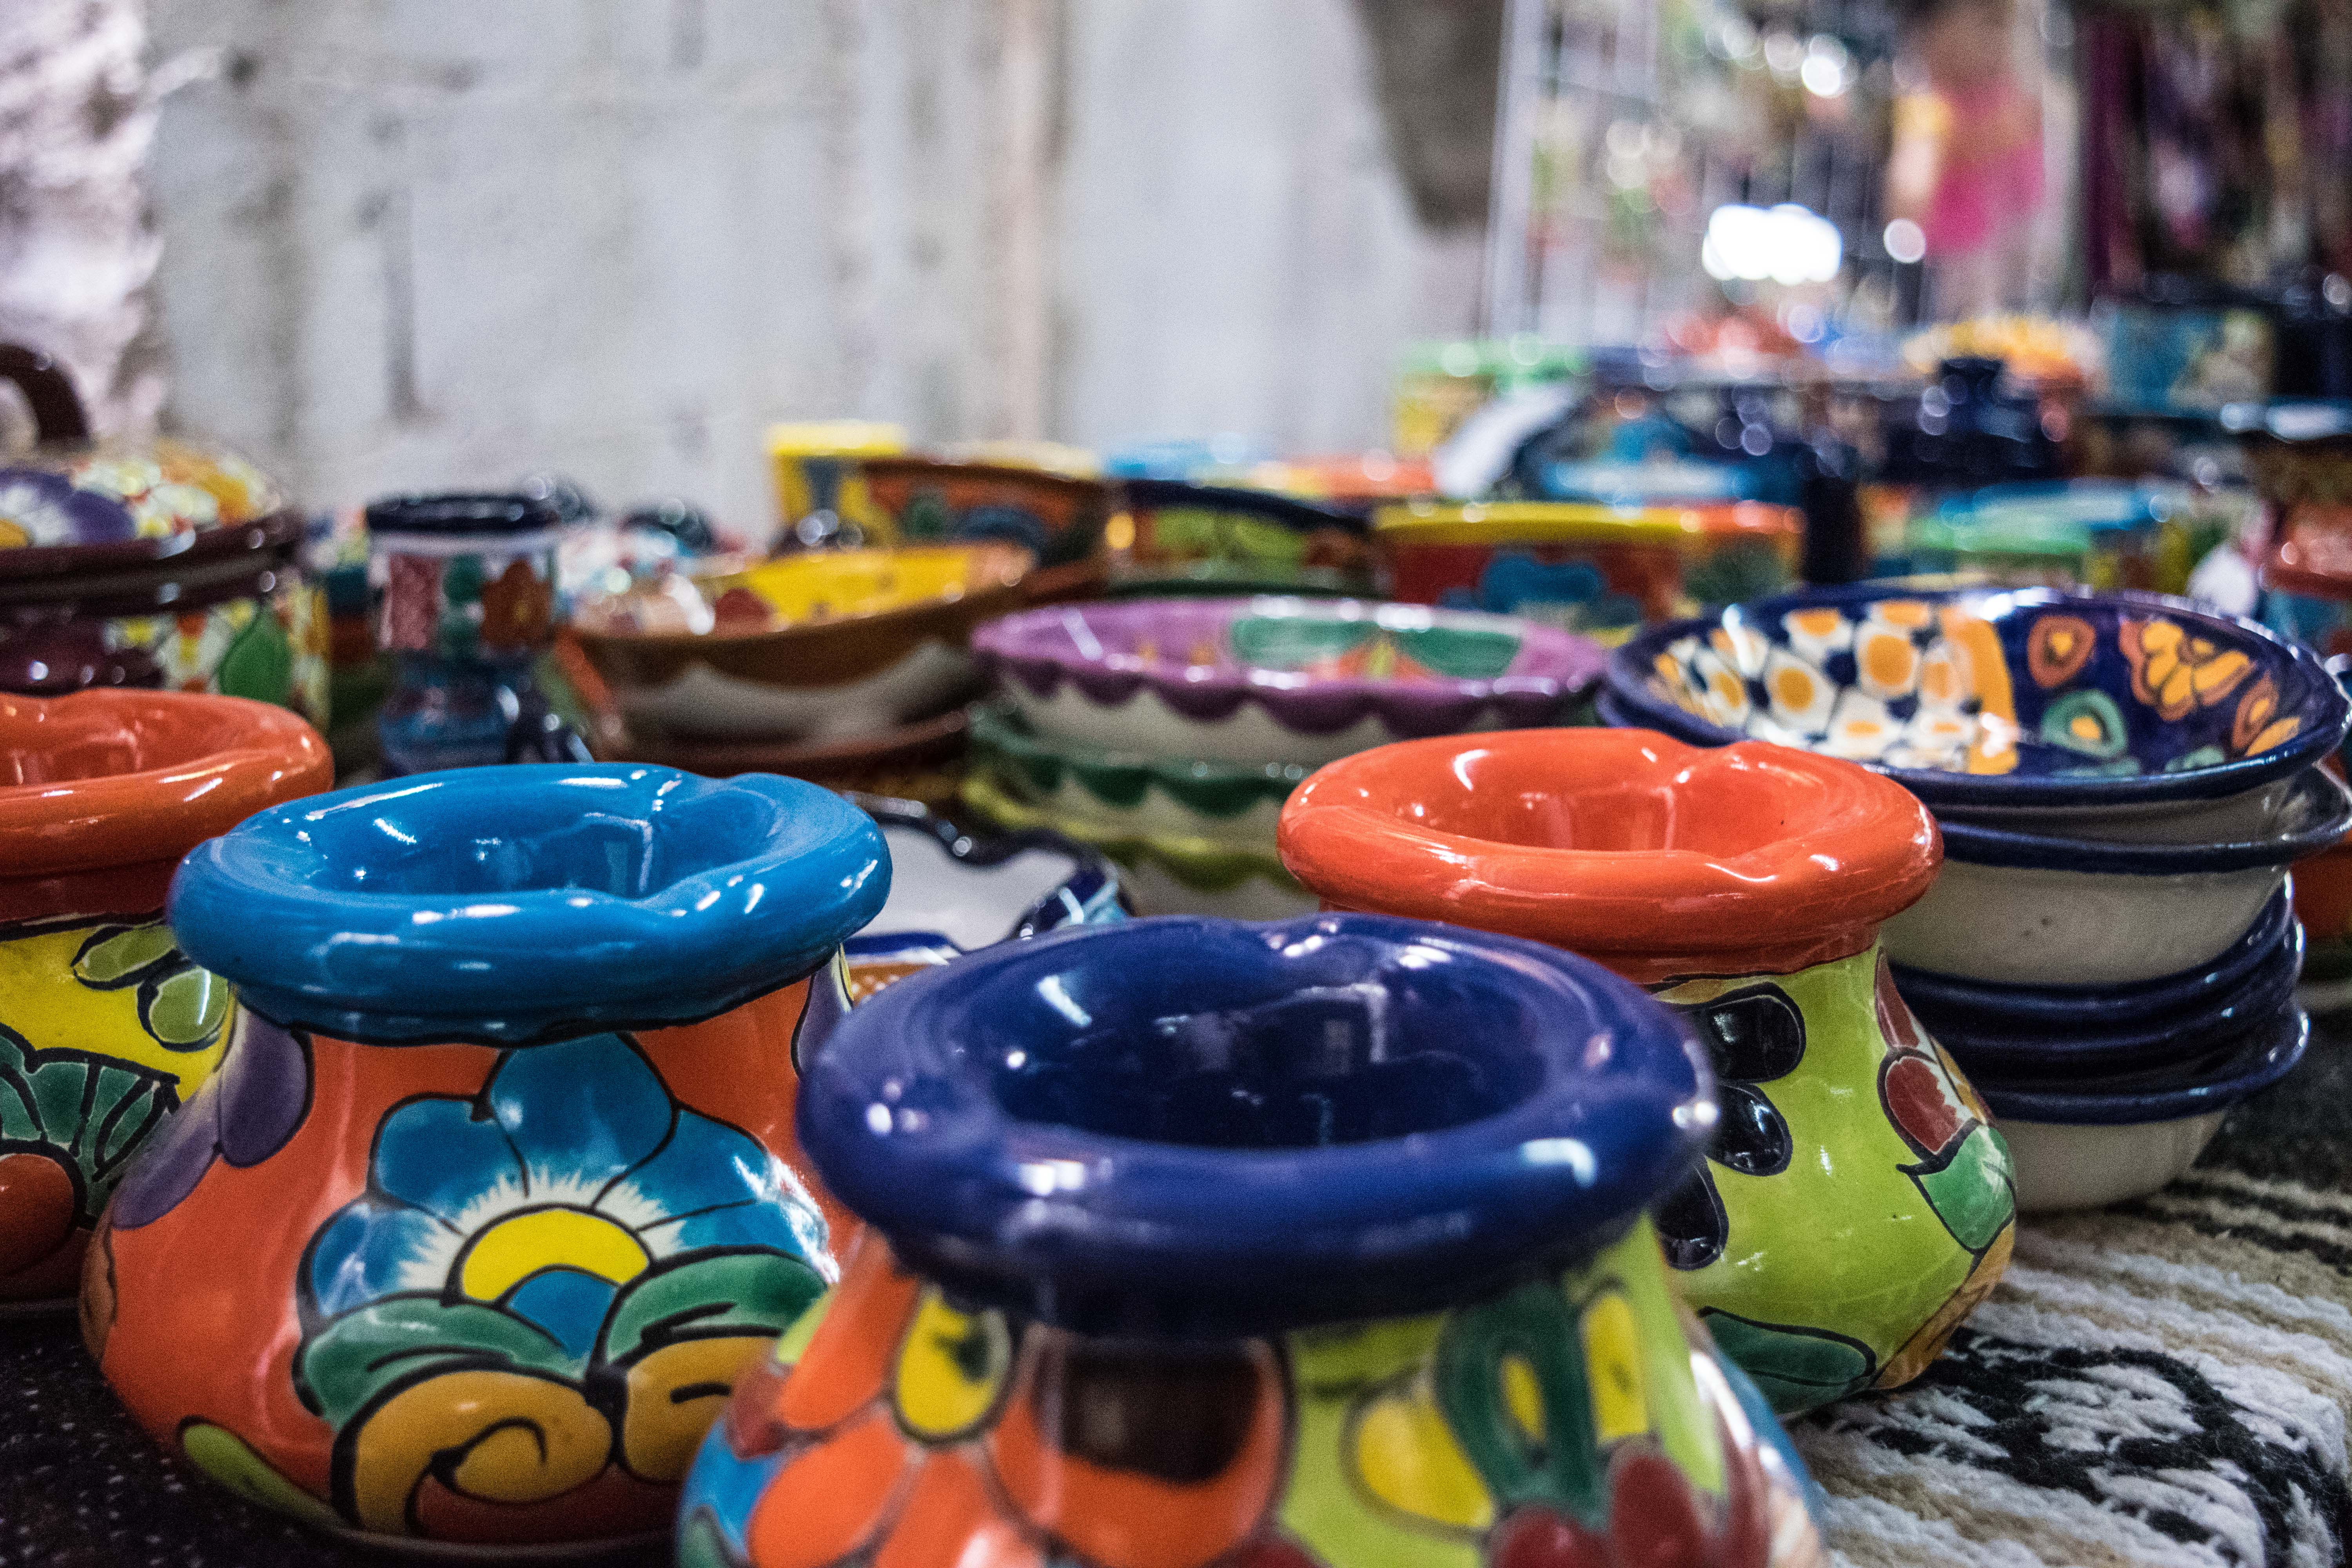 pottery at the market